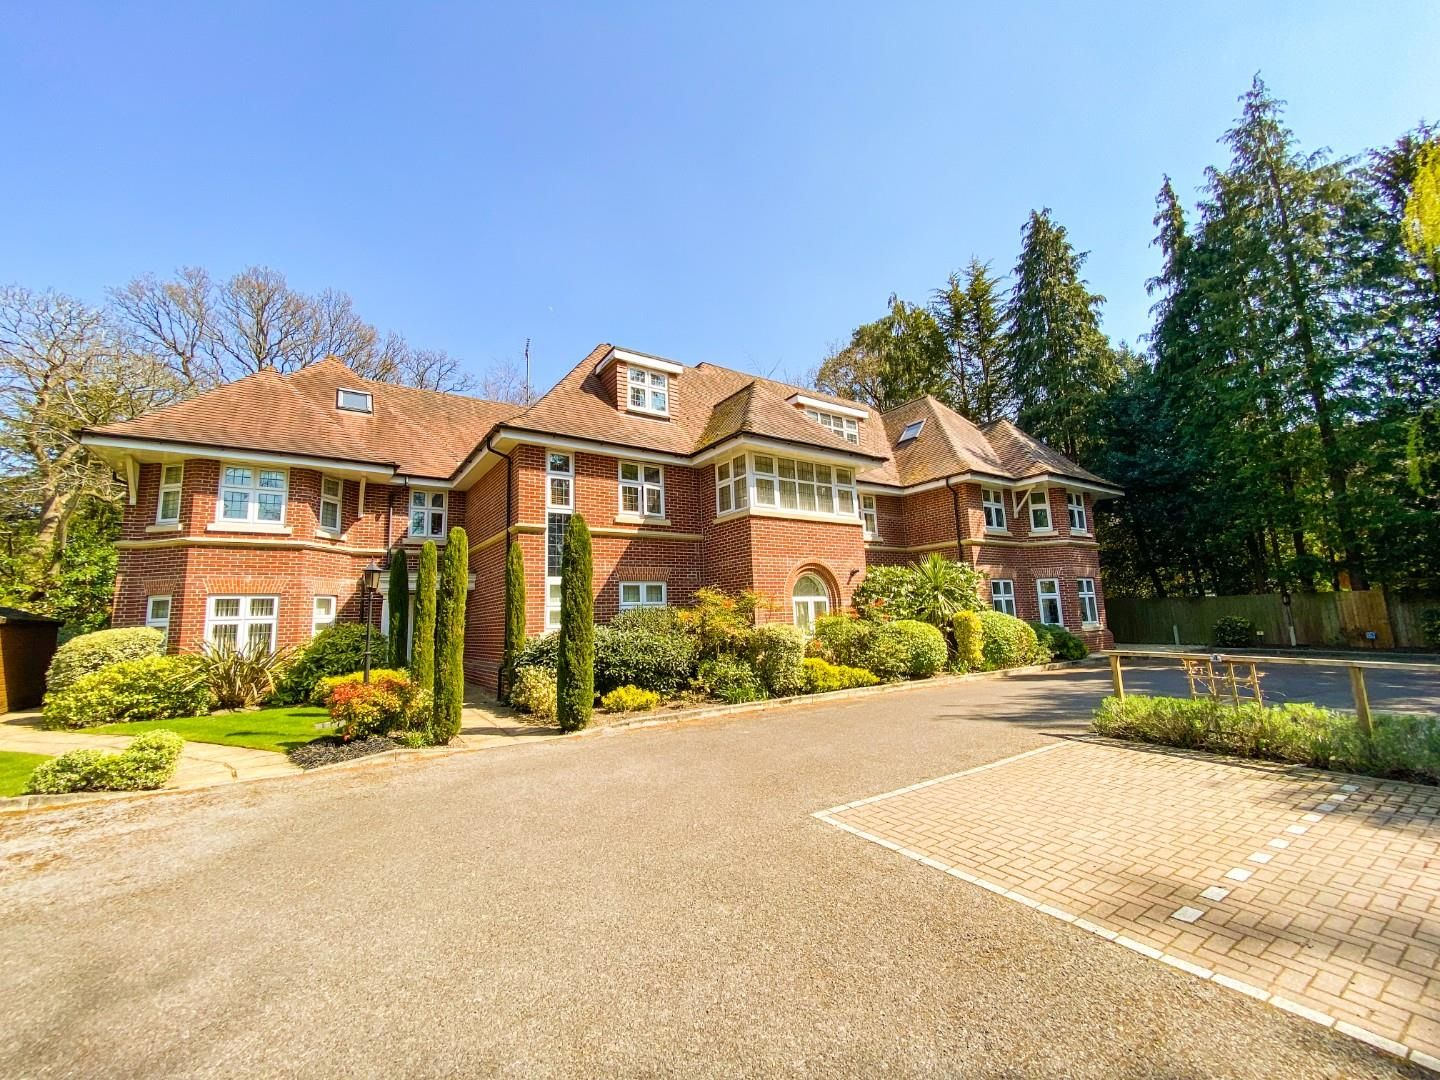 2 bed apartment for sale, GU15